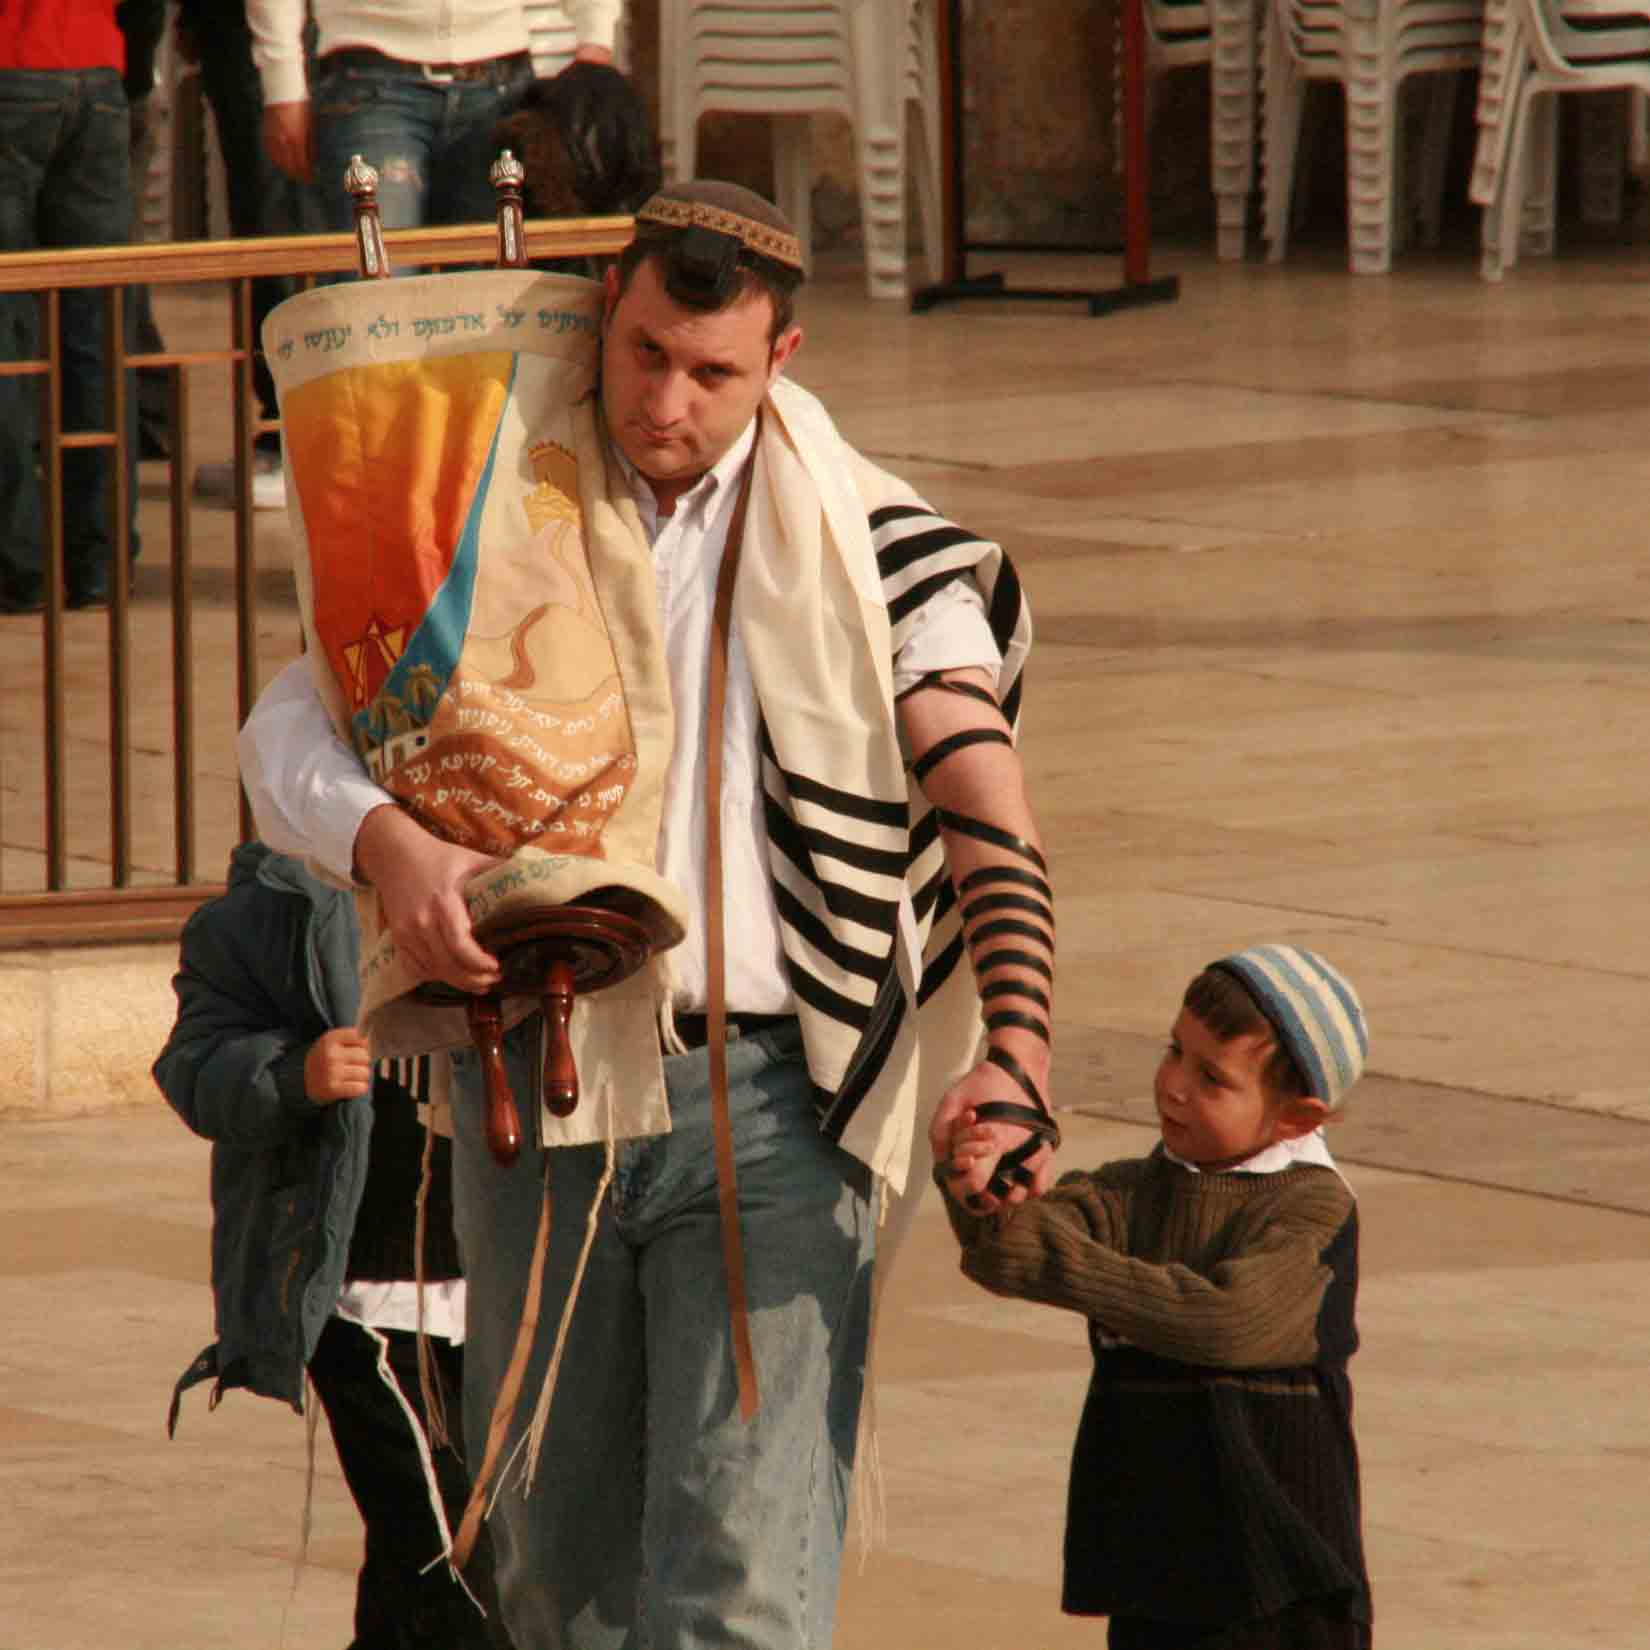 ISRAEL | JUL. 08, 2020 — New Christian Faces Daily Struggles in Orthodox Jewish Culture